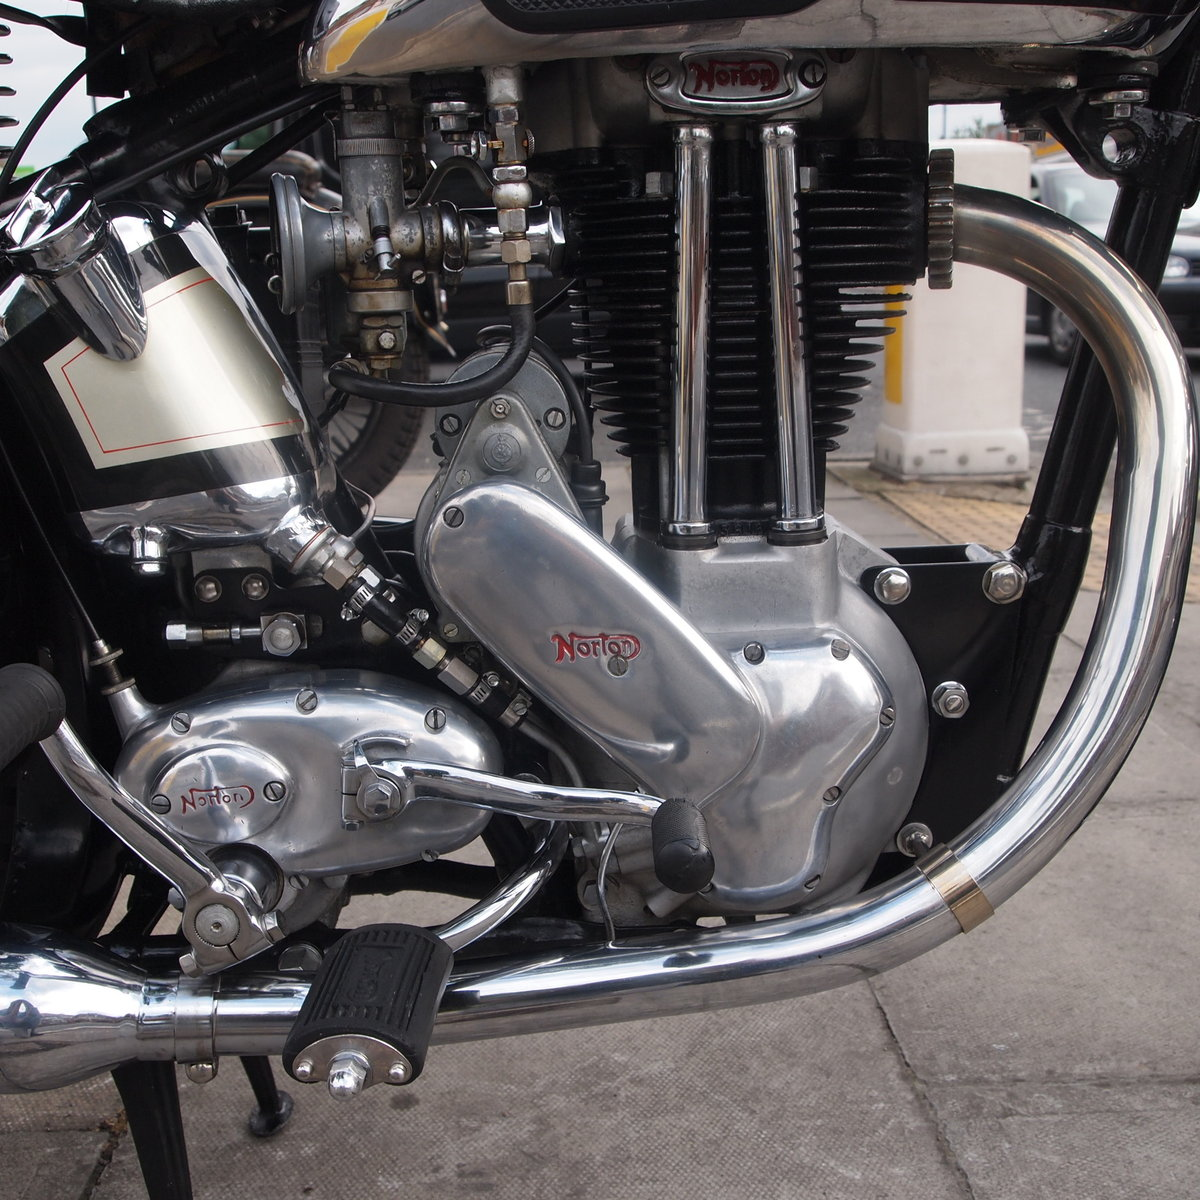 1950 Extremely Original Norton ES2 500, Must See. For Sale (picture 3 of 6)